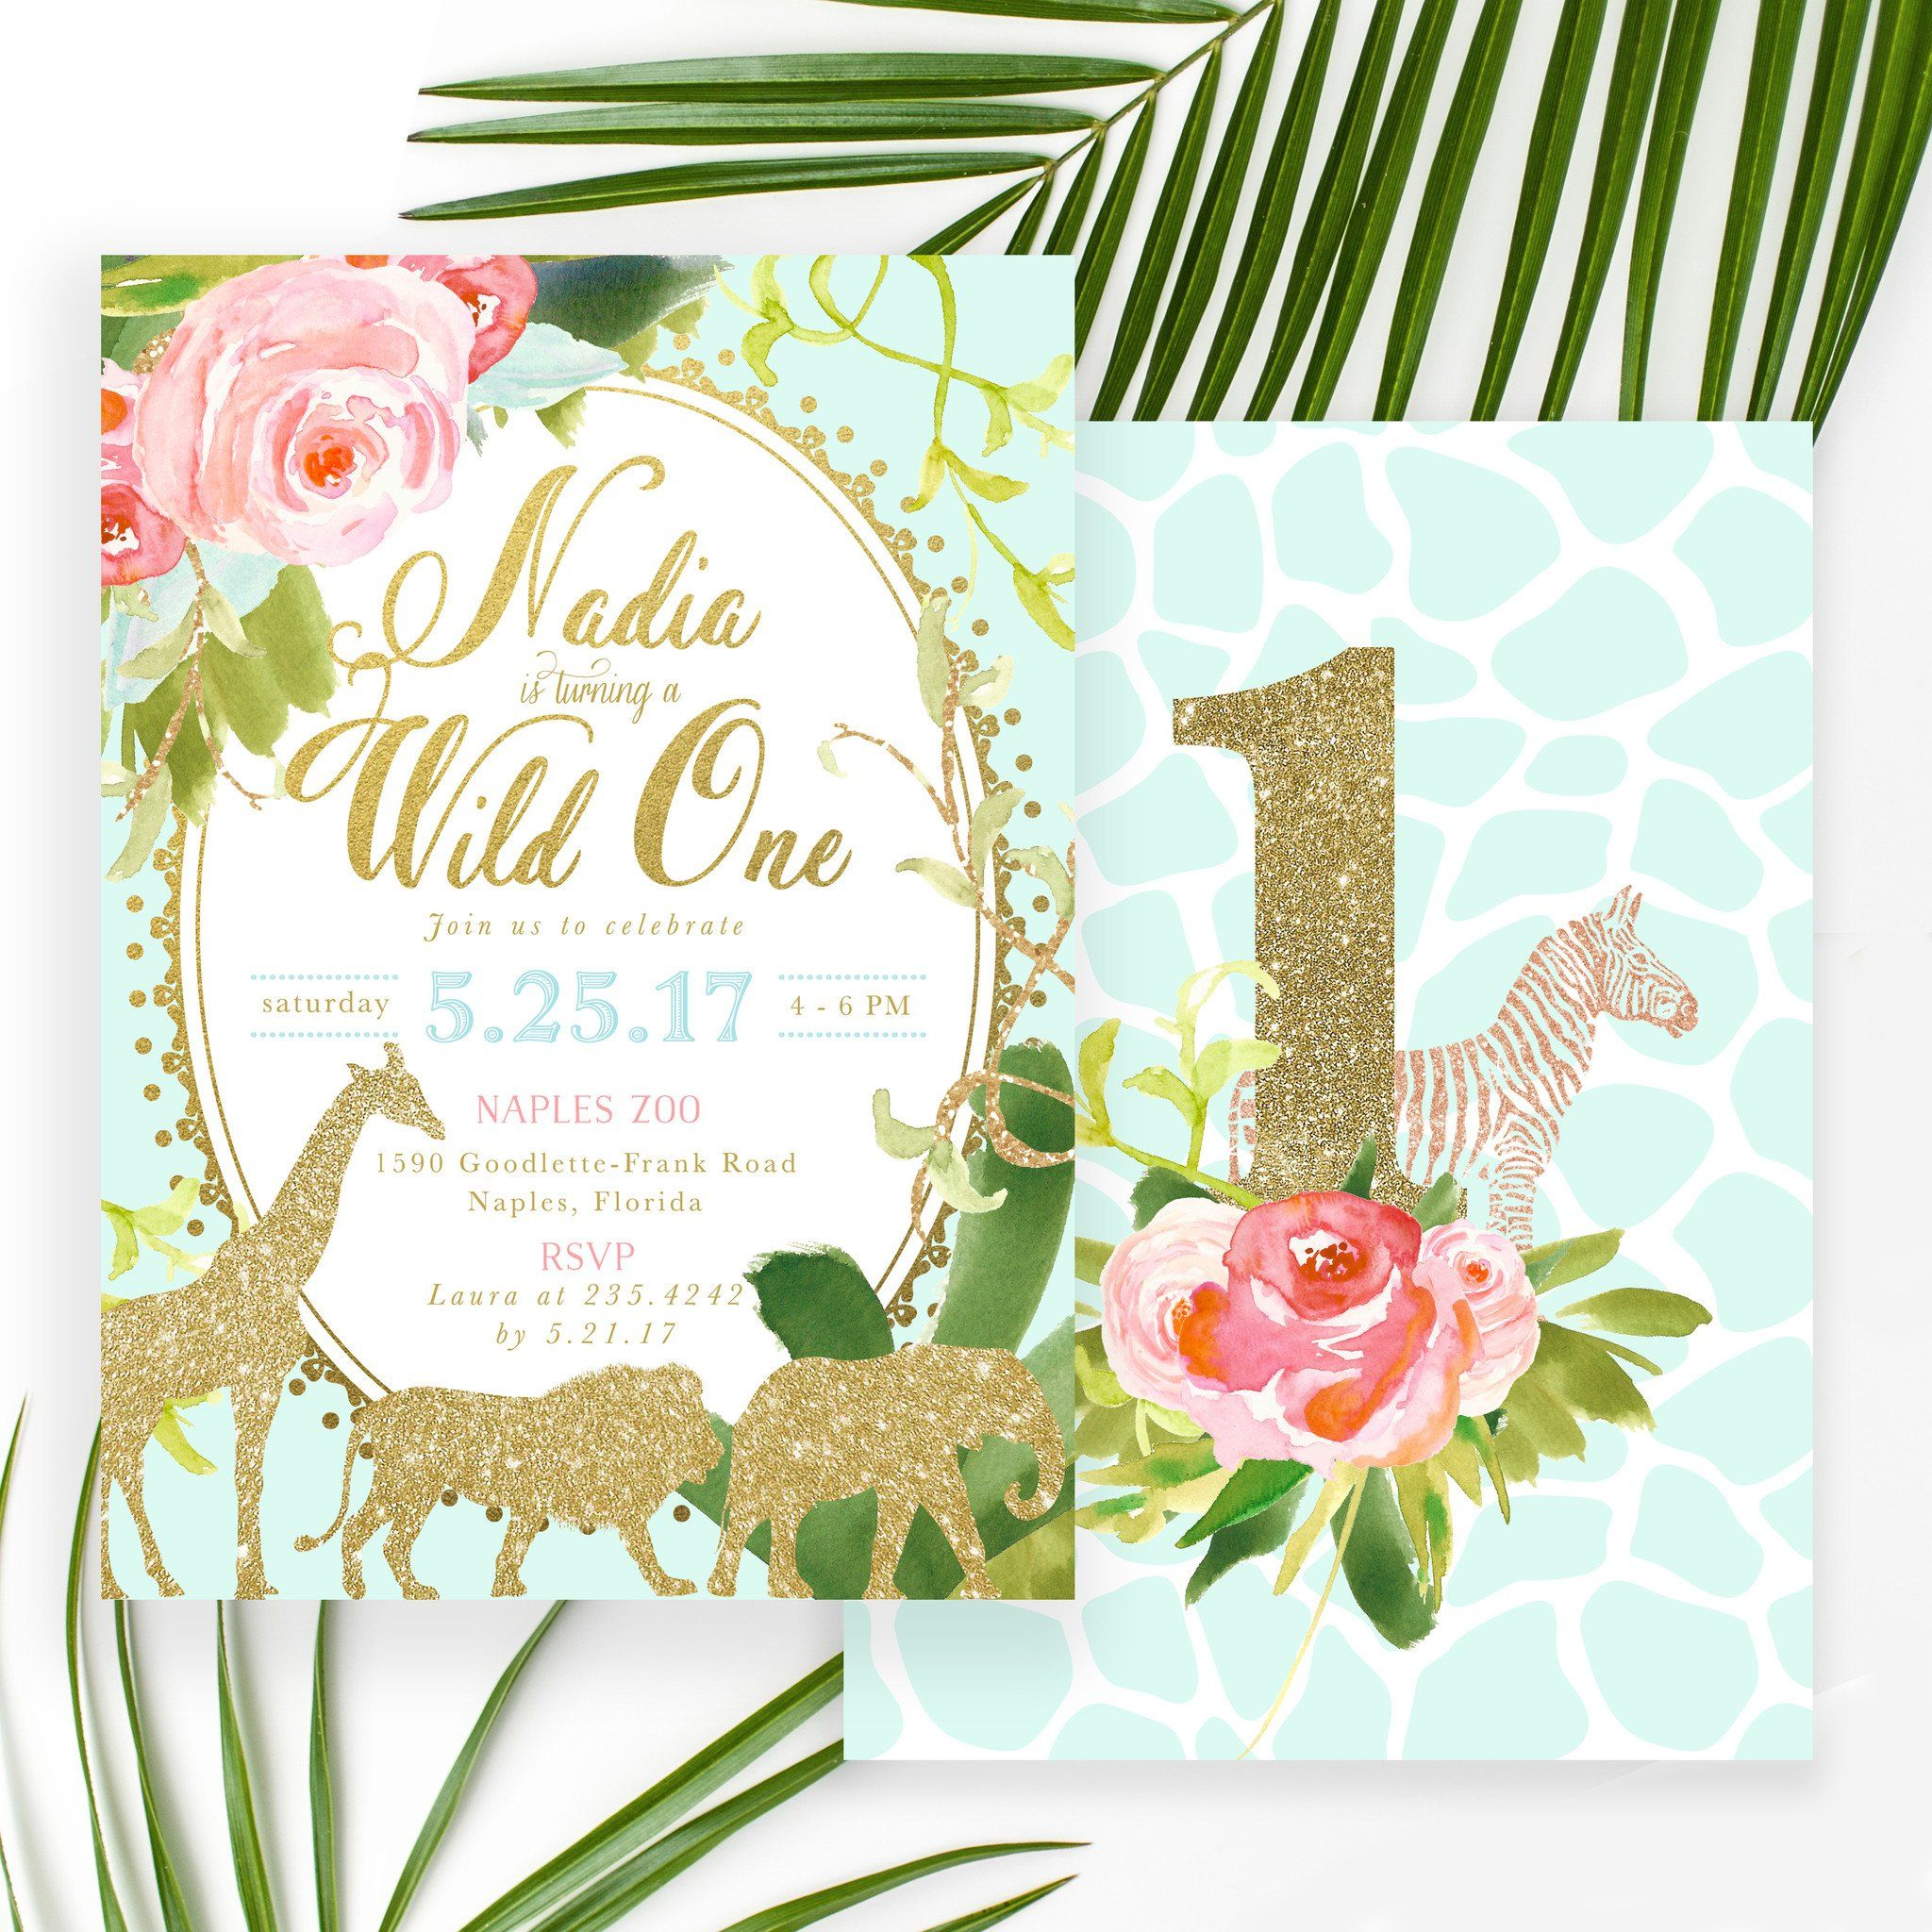 Glam Safari Jungle Girl First Birthday Invitation Tropical Flowers Giraffe Lion Elephant Gold Mint Green 1st Party Invite